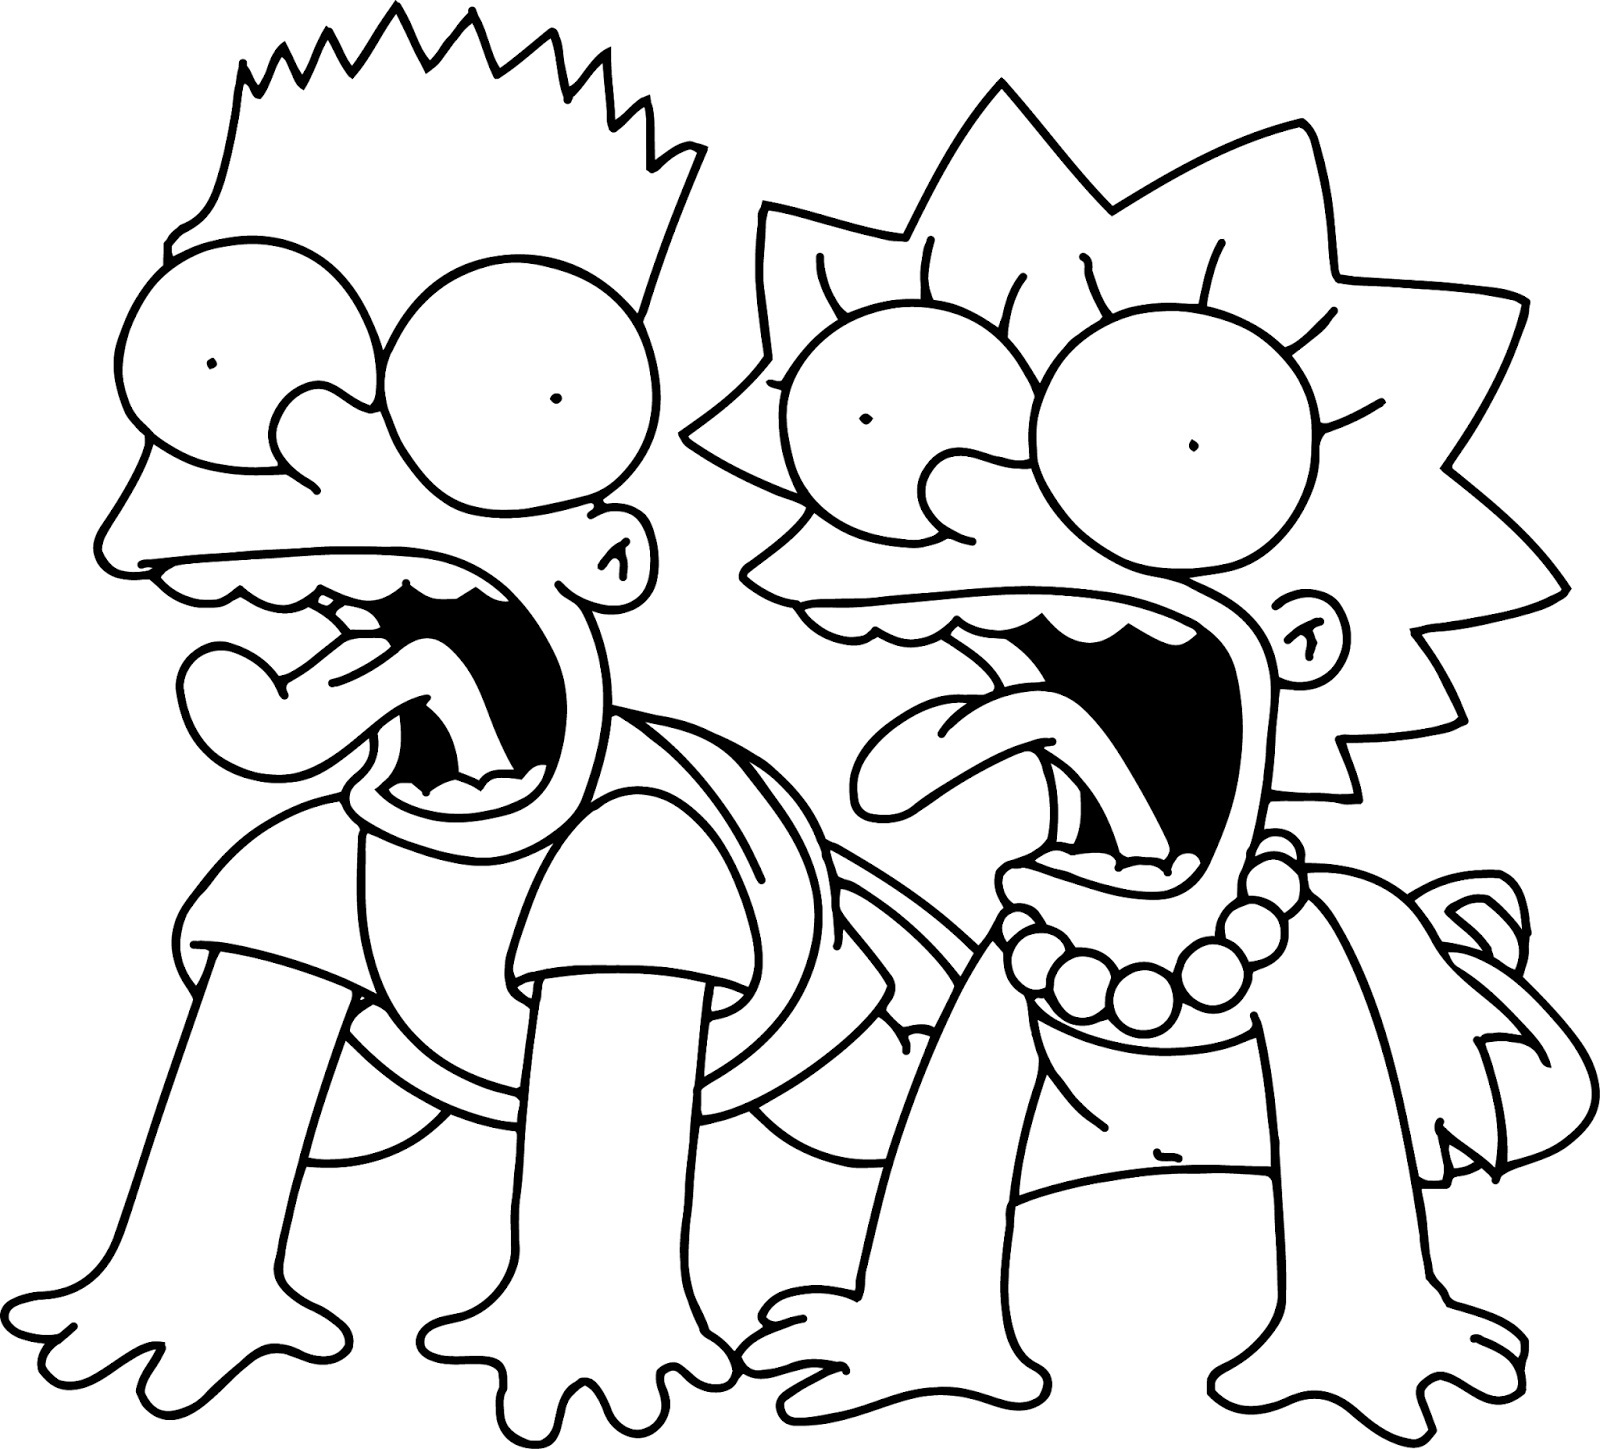 Free Coloring Pages Of Bart Simpsons Www Free Coloring Sheets